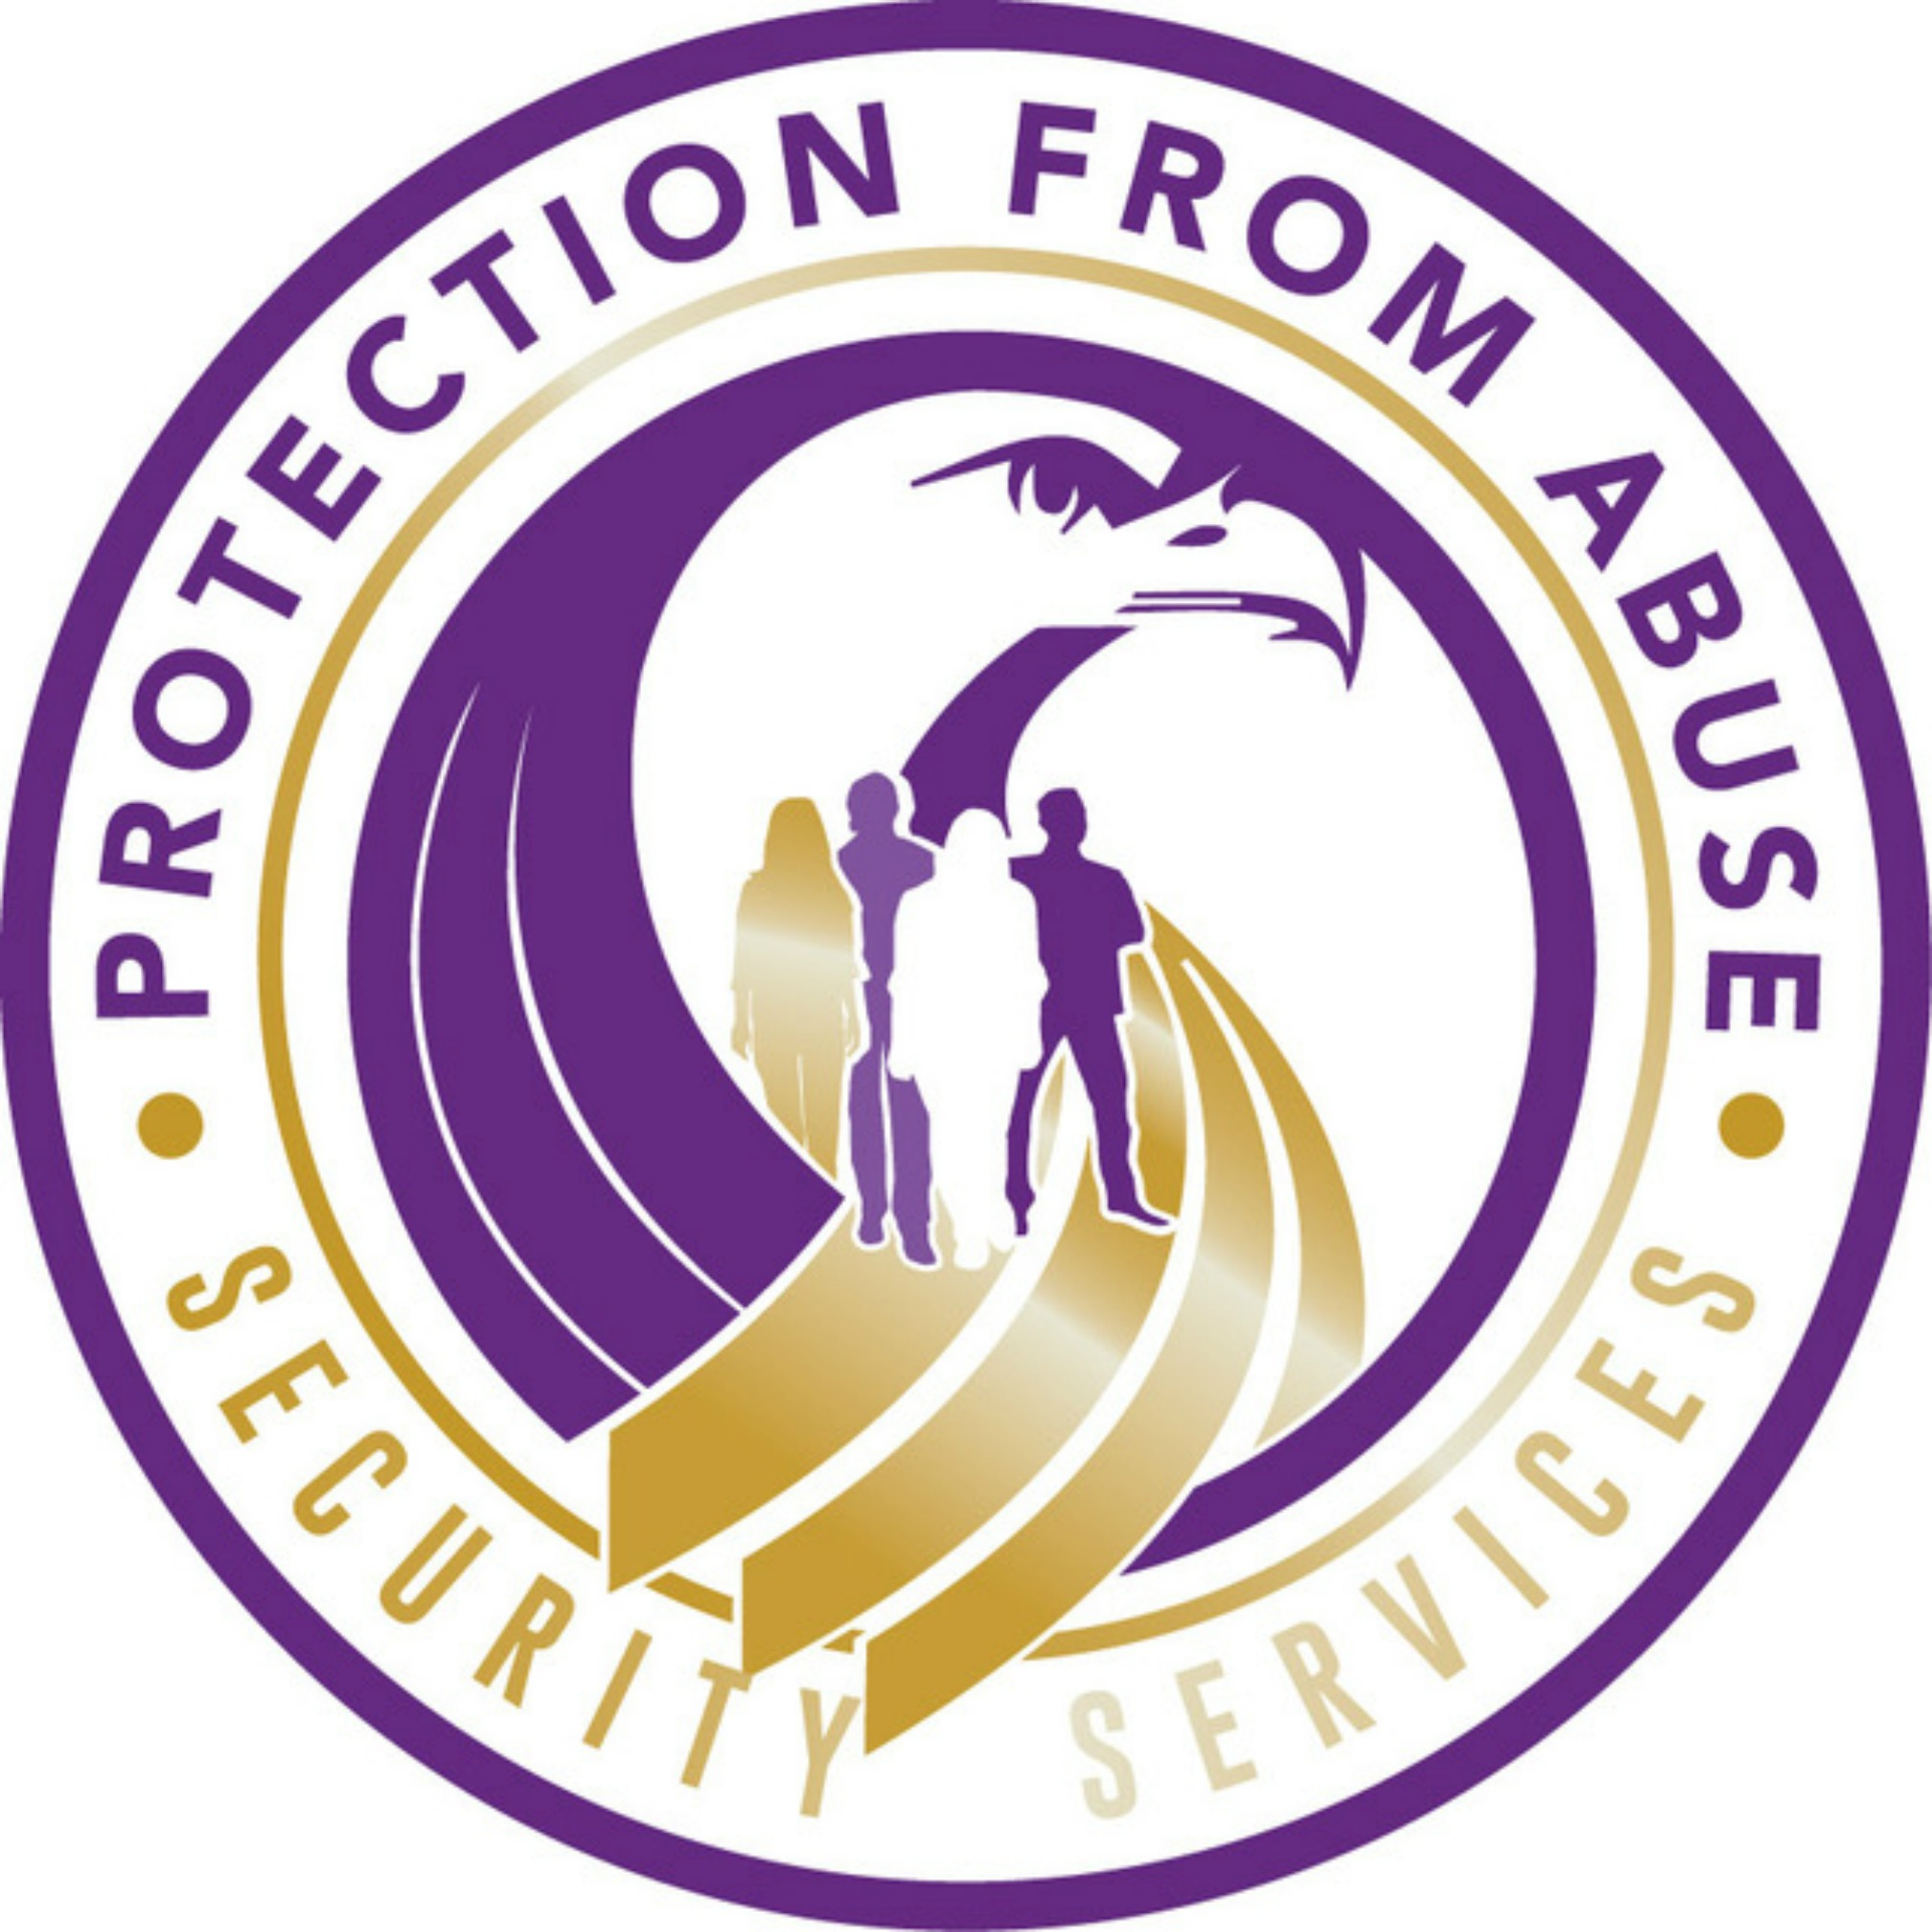 https://protectionfromabuse.org/